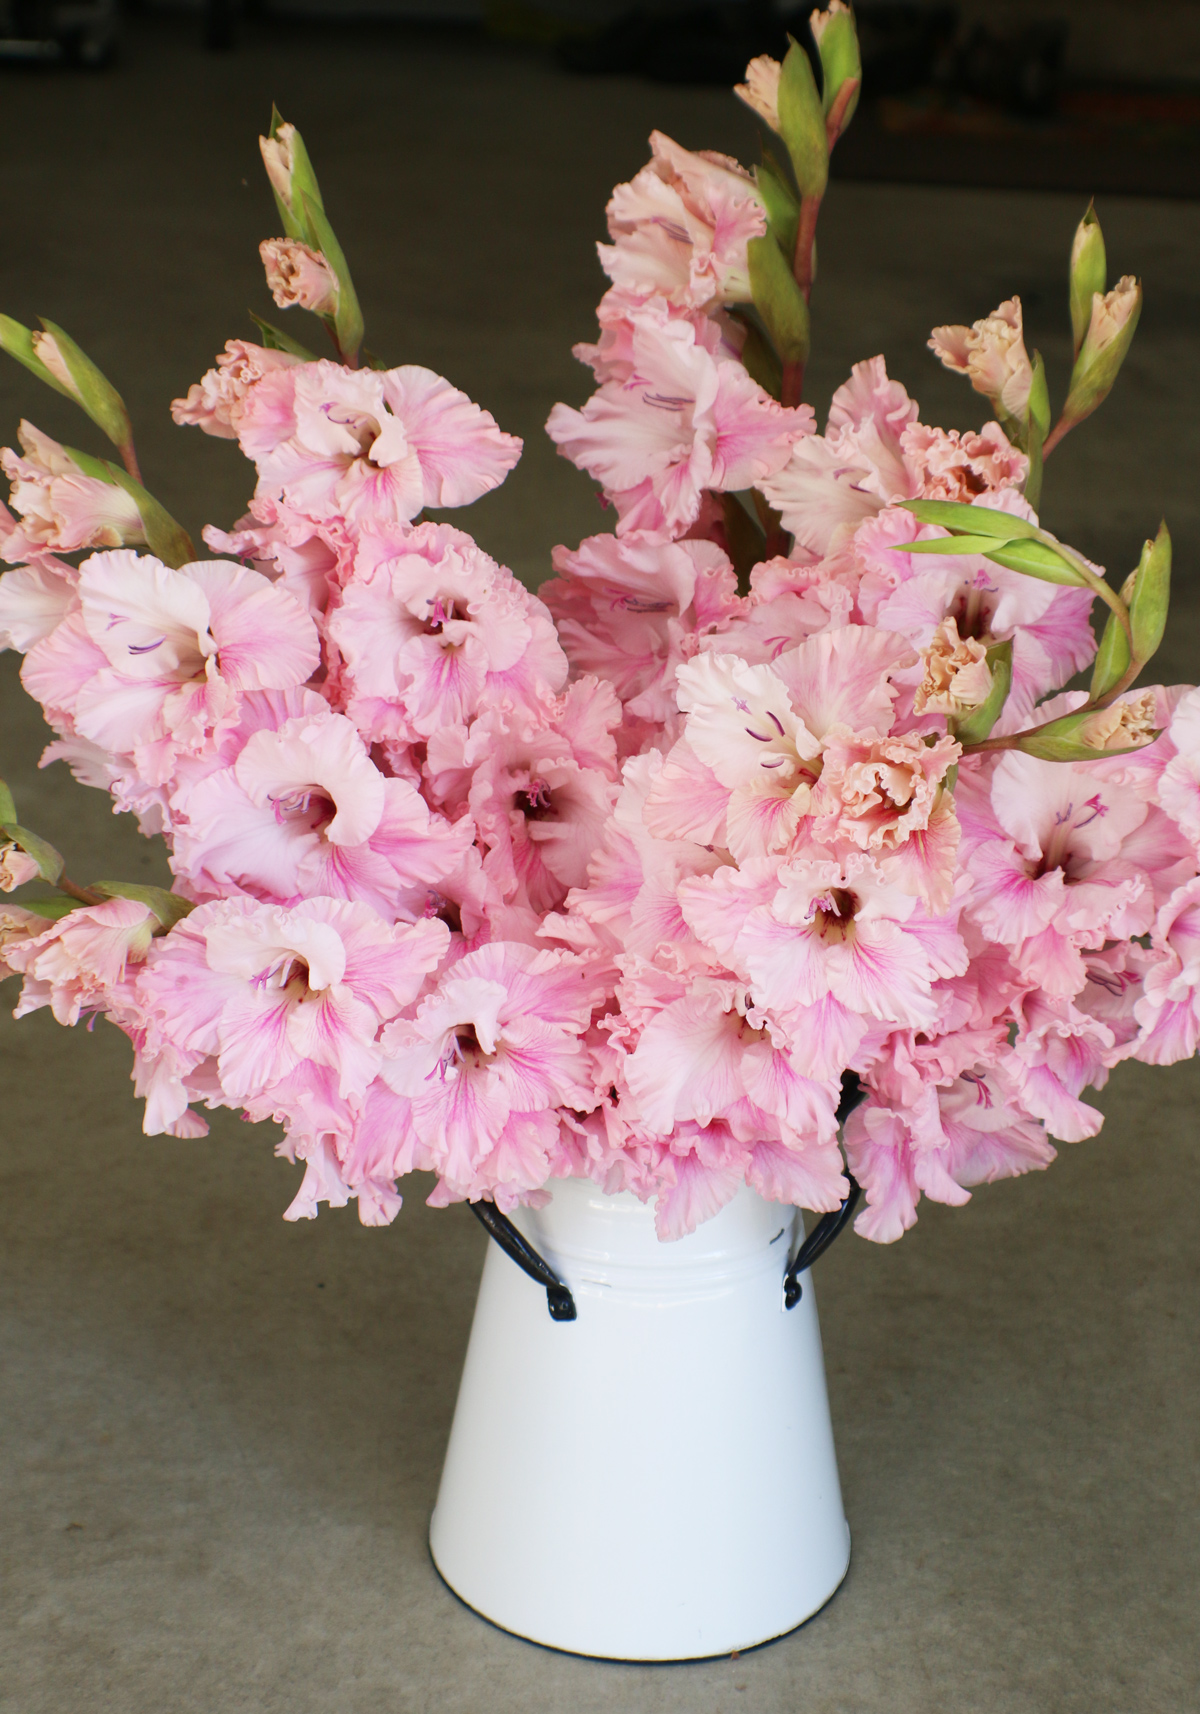 Gladiolus Get Their Groove Back - Longfield Gardens